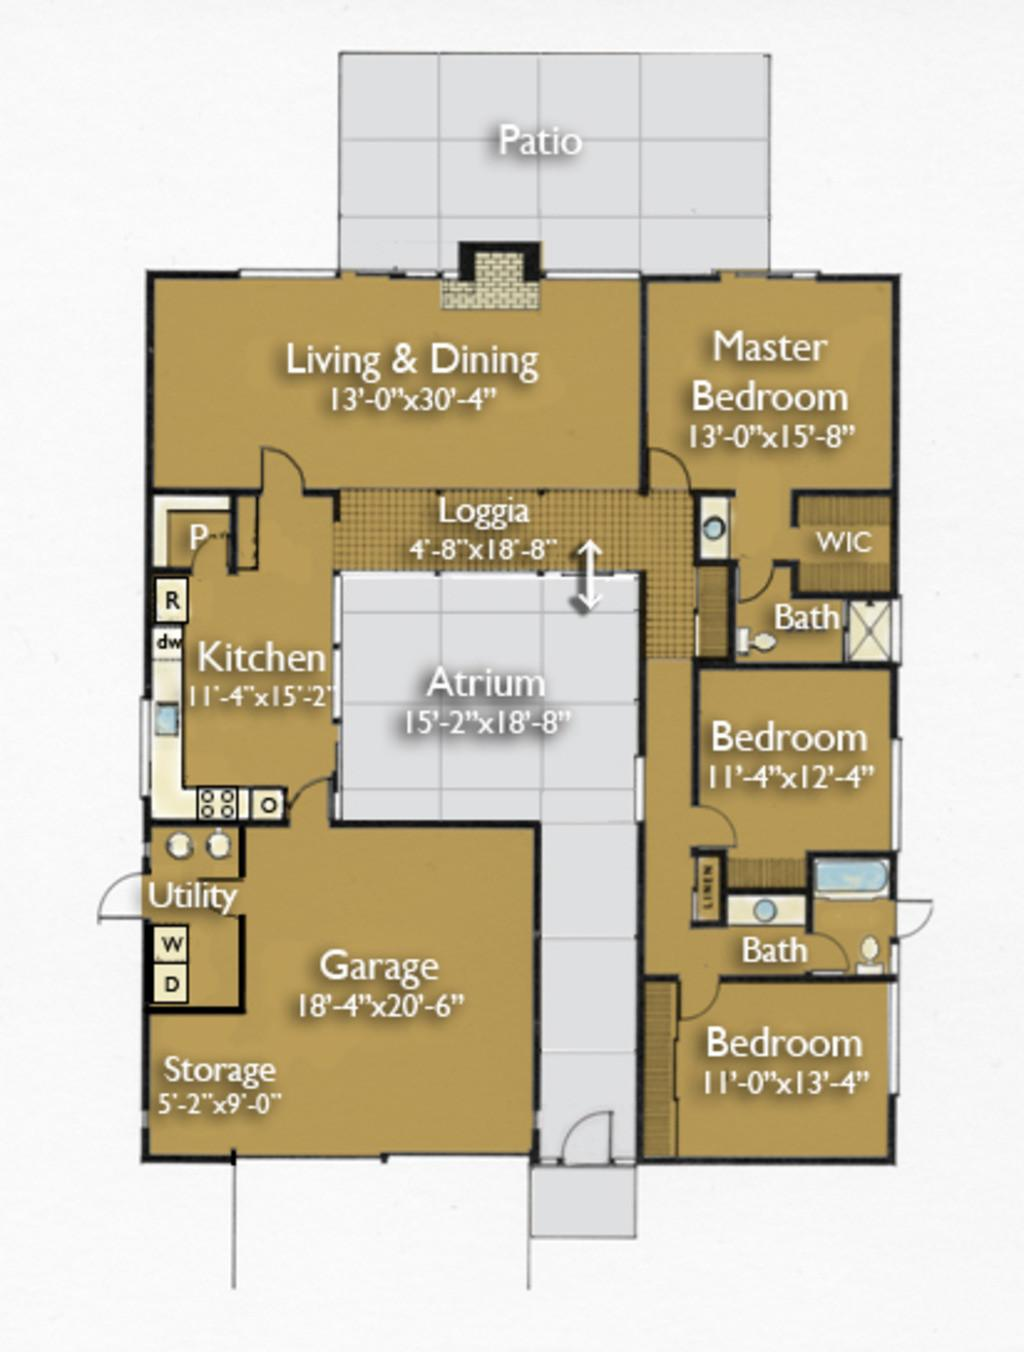 25 Most Popular Small Modern Home Central Atrium That Will Give Your Home The Edge Diverse Designs Decoratorist